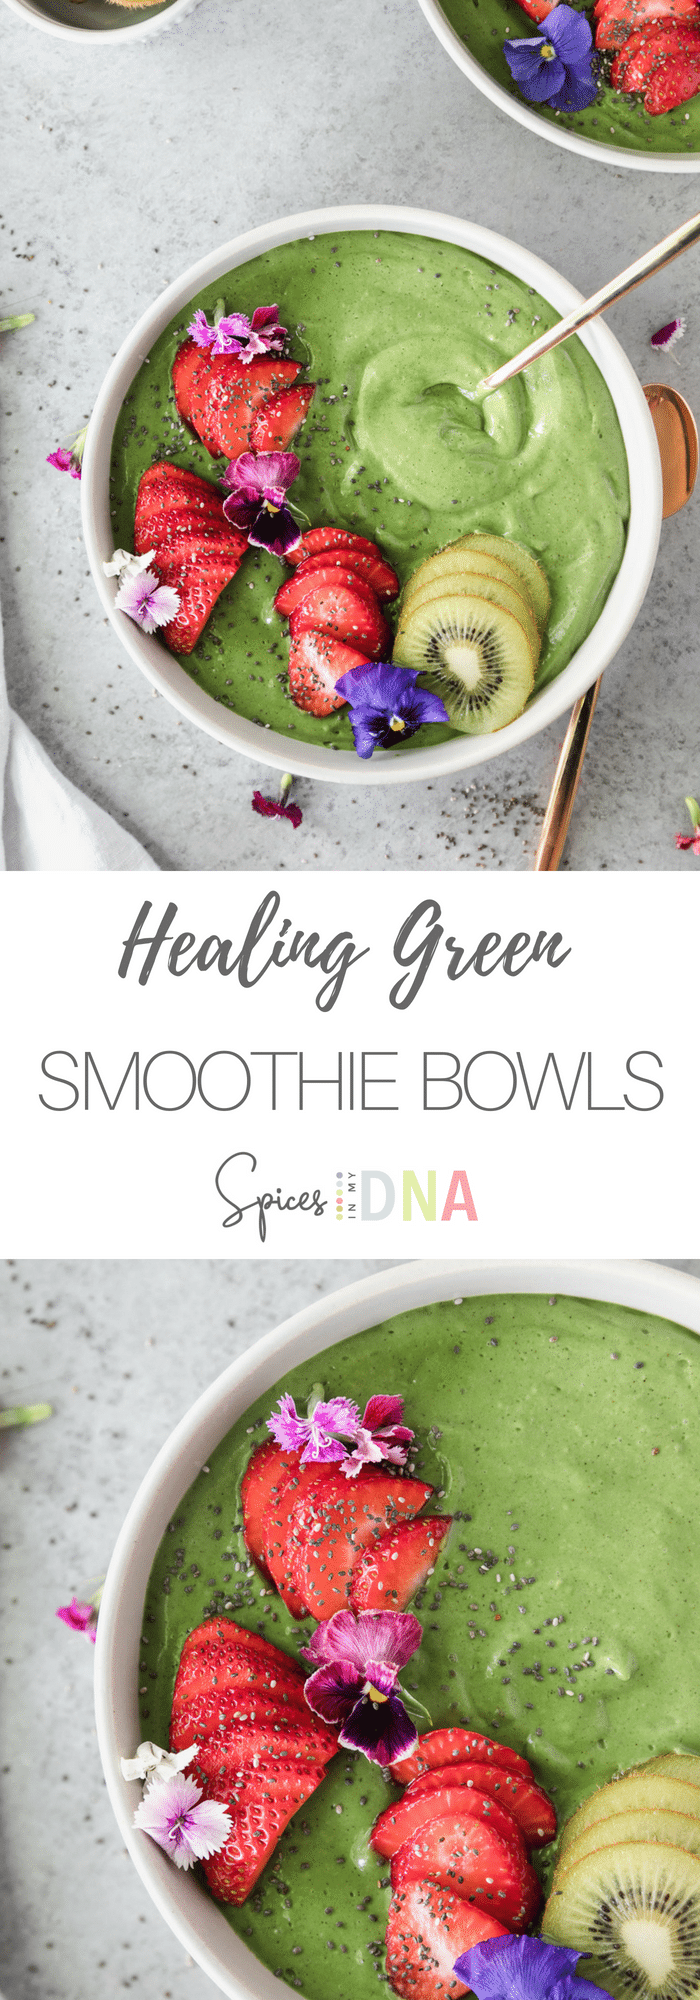 This Healing Green Smoothie Bowl is filled with so many nutrients from spinach, ginger, kiwi, and cinnamon, plus frozen banana and avocado for creaminess! It's jam packed with vitamin C, and it tastes like the most delicious pudding! You'd never know how good it is for you! #smoothie #smoothiebowl #greensmoothie